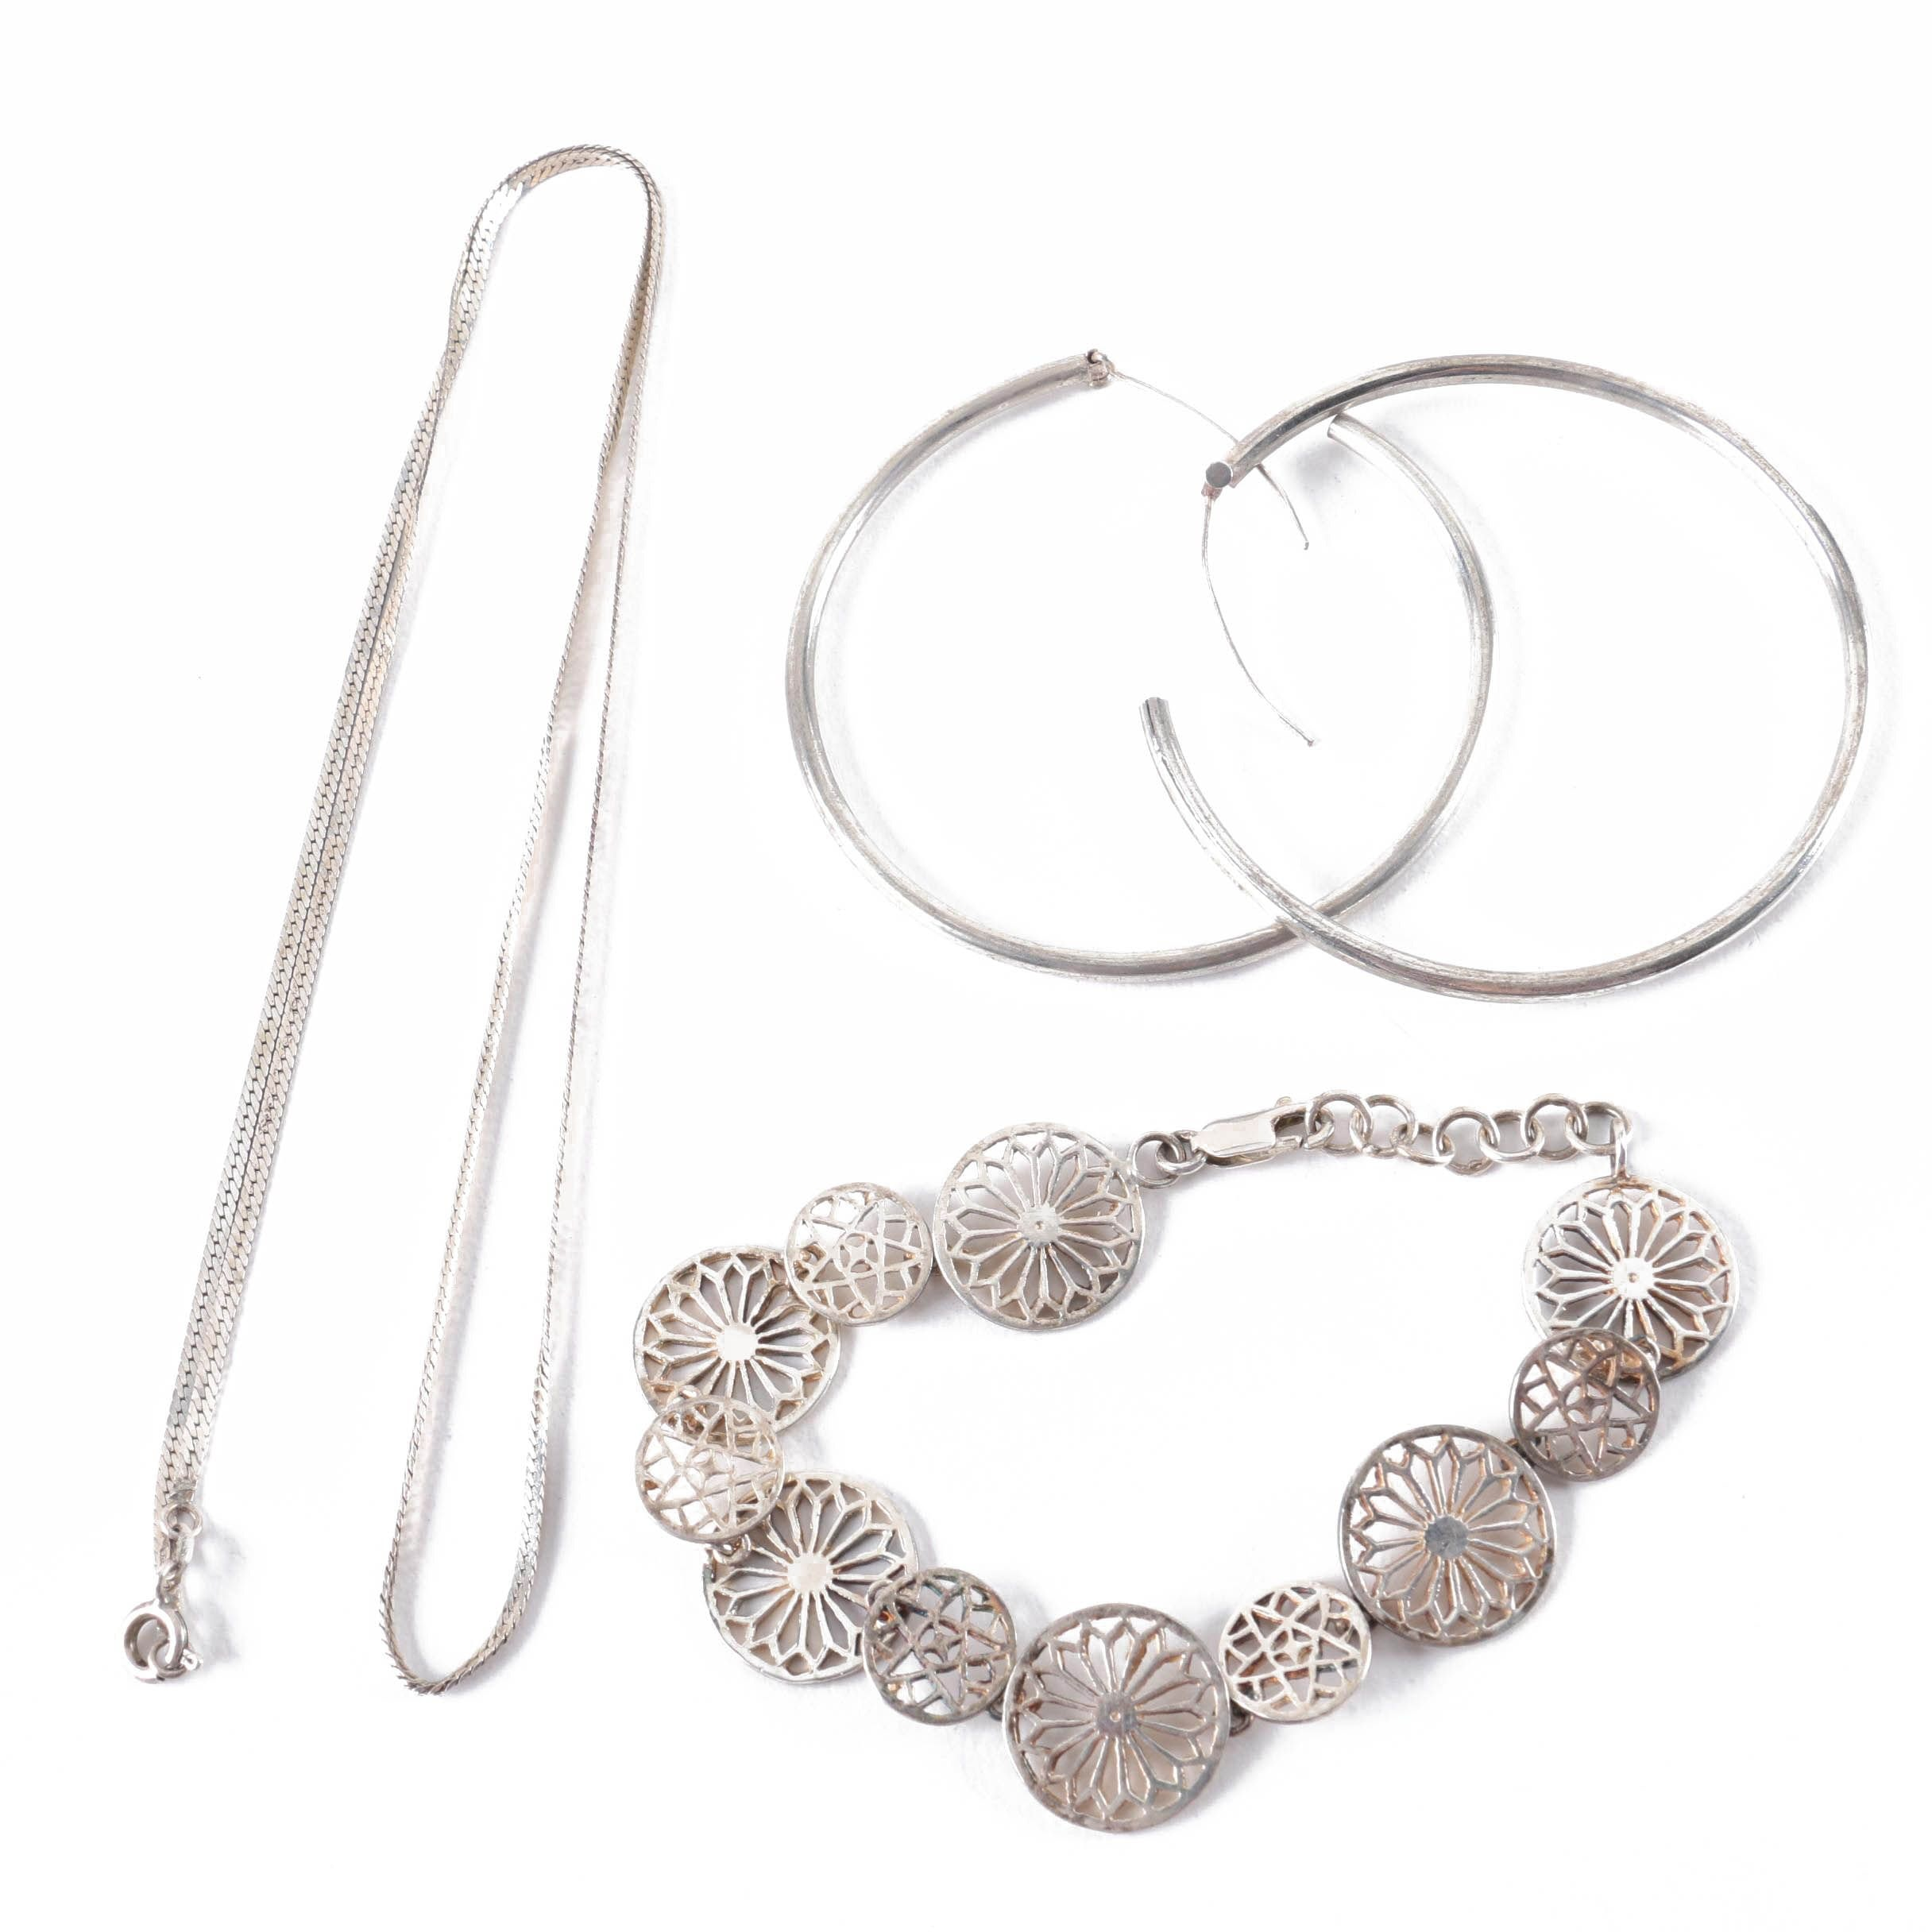 Sterling Silver Bracelet, Necklace and Earrings